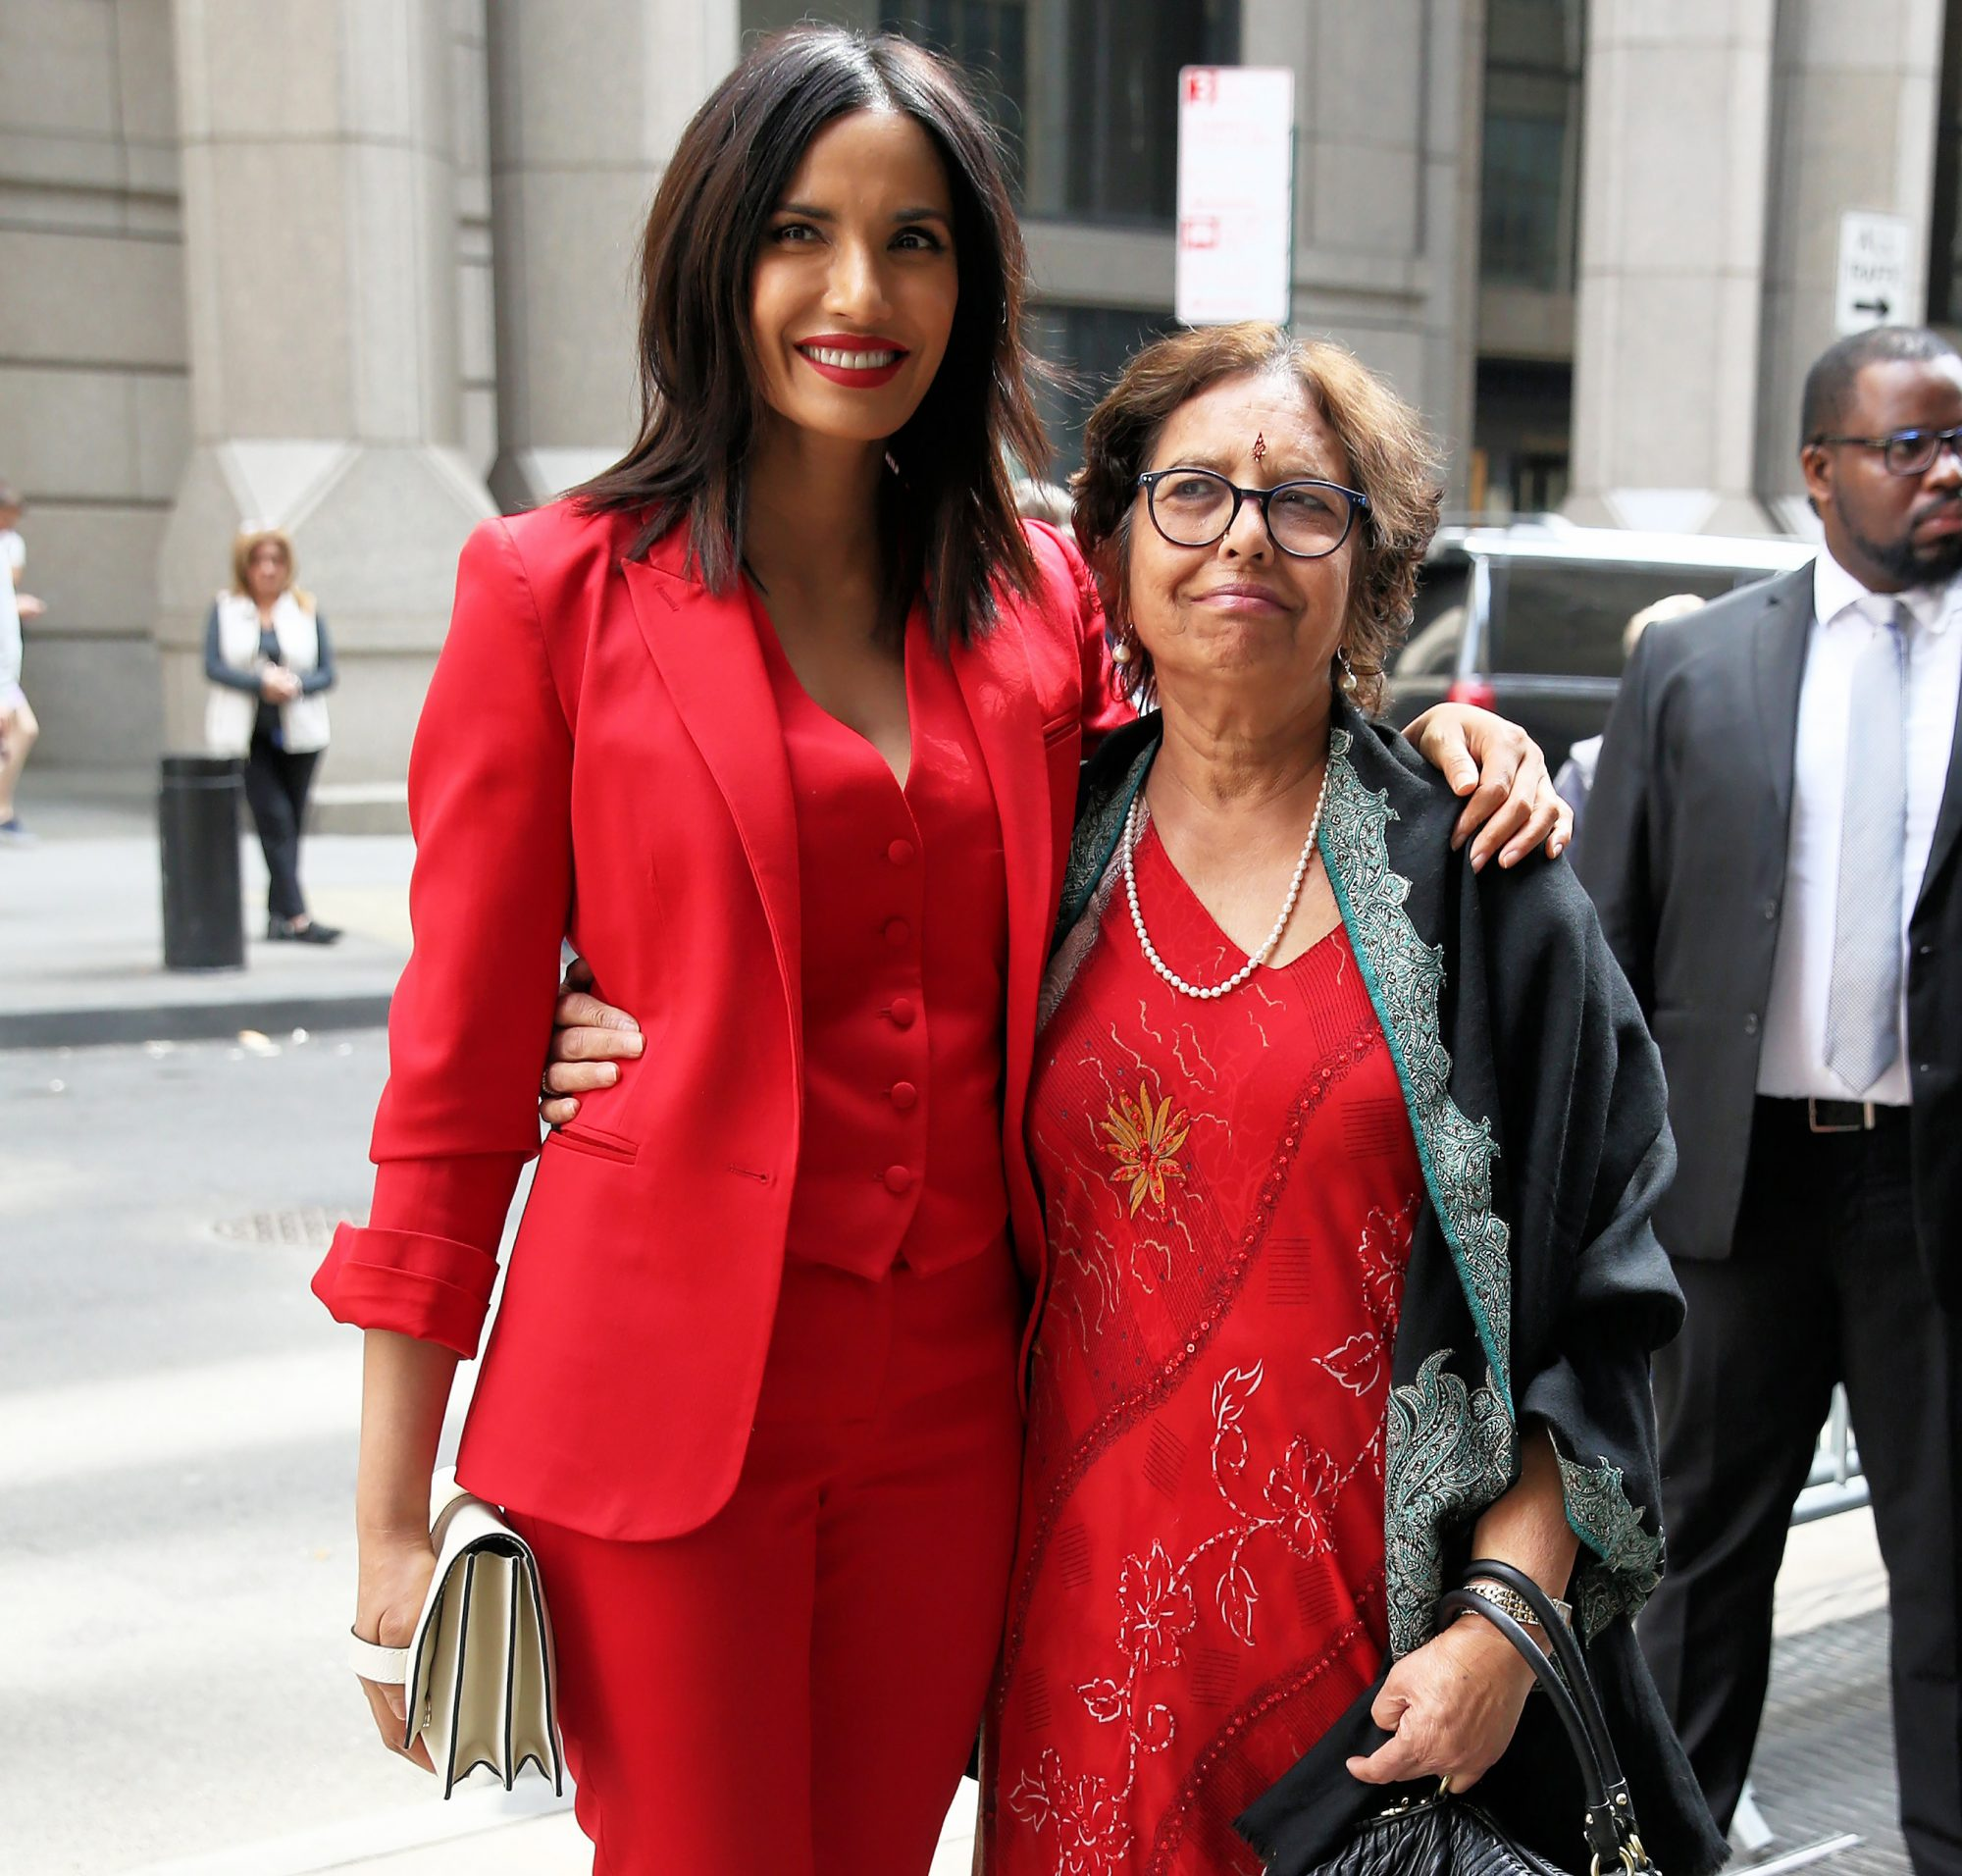 Top Chef TV personality Padma Lakshmi, wearing a red pants suit, and her mother Vijaya Lakshmi attend Variety's 'Power of Women' luncheon at Cipriani Wall Street in New York City, New York on April 13, 2018.